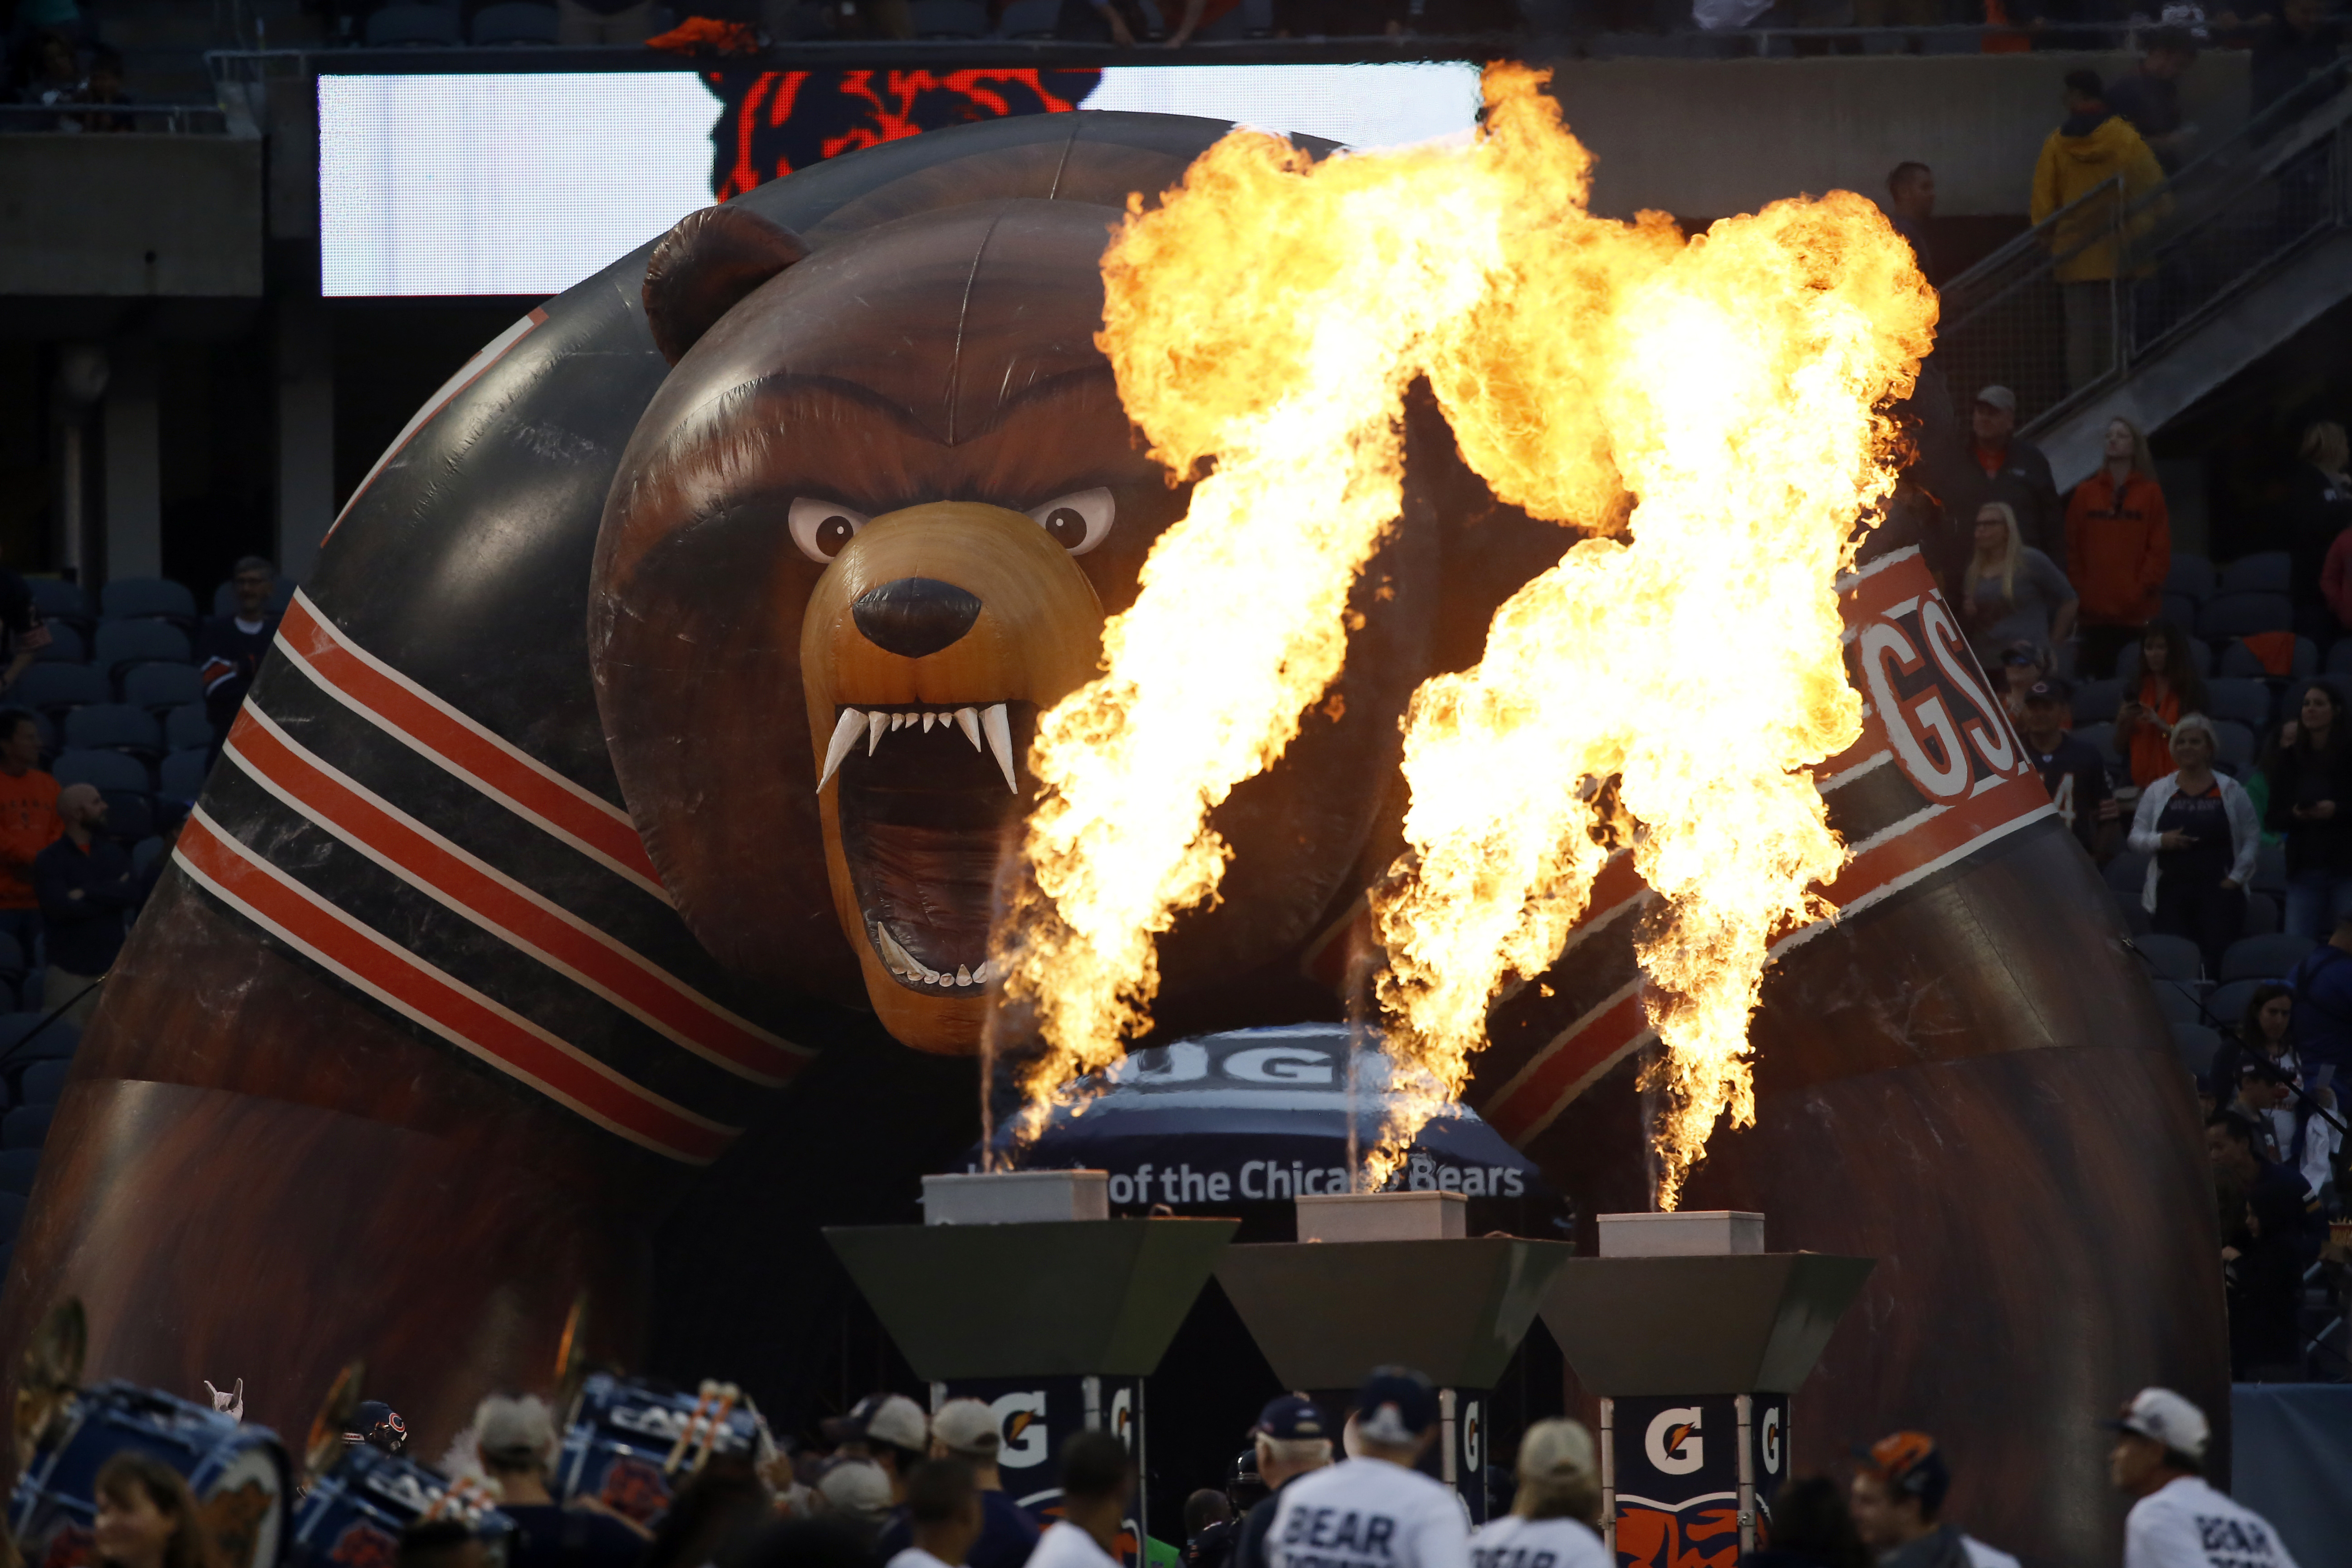 The Bears' home opener will be at noon Sept. 19 against the Bengals.